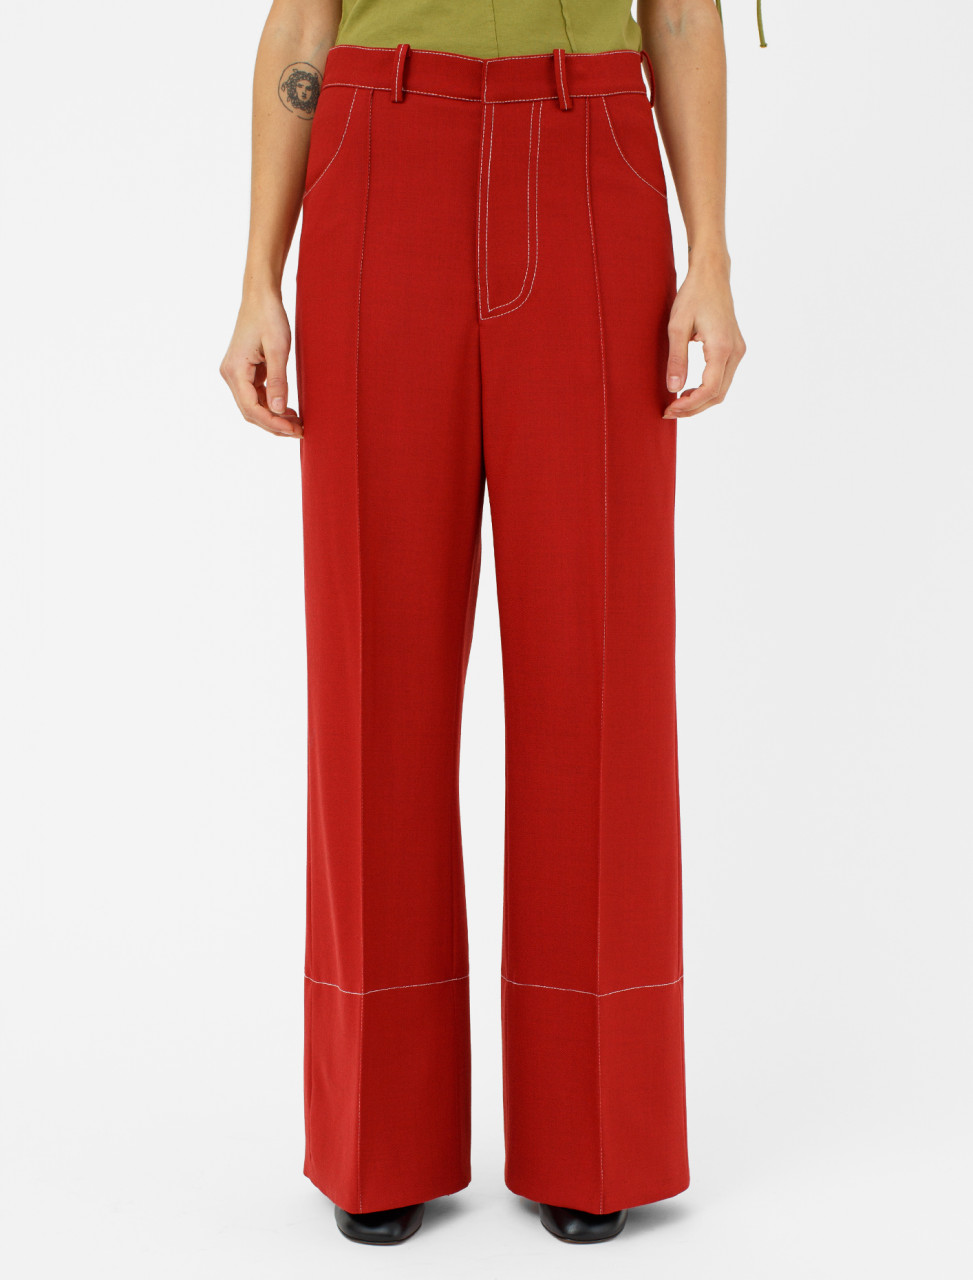 Trousers in China Red